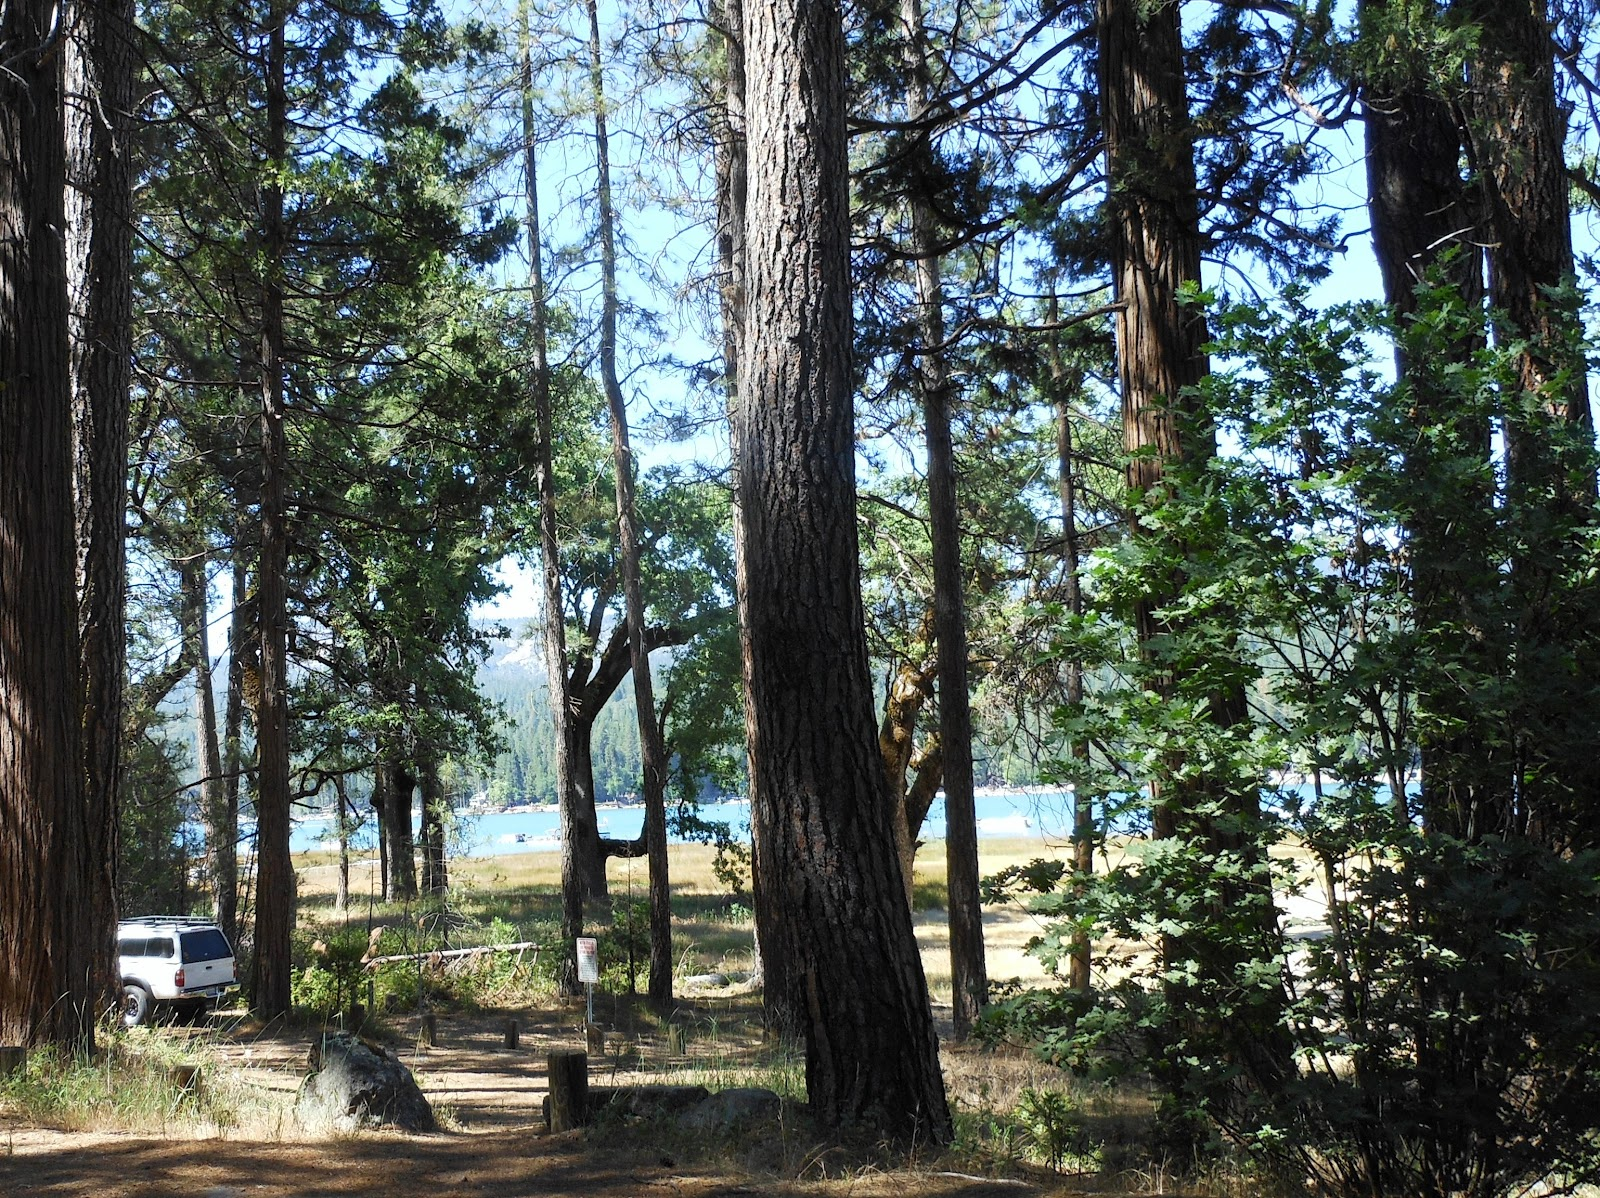 1000 Hikes In 1000 Days Day 575 Forks Campground